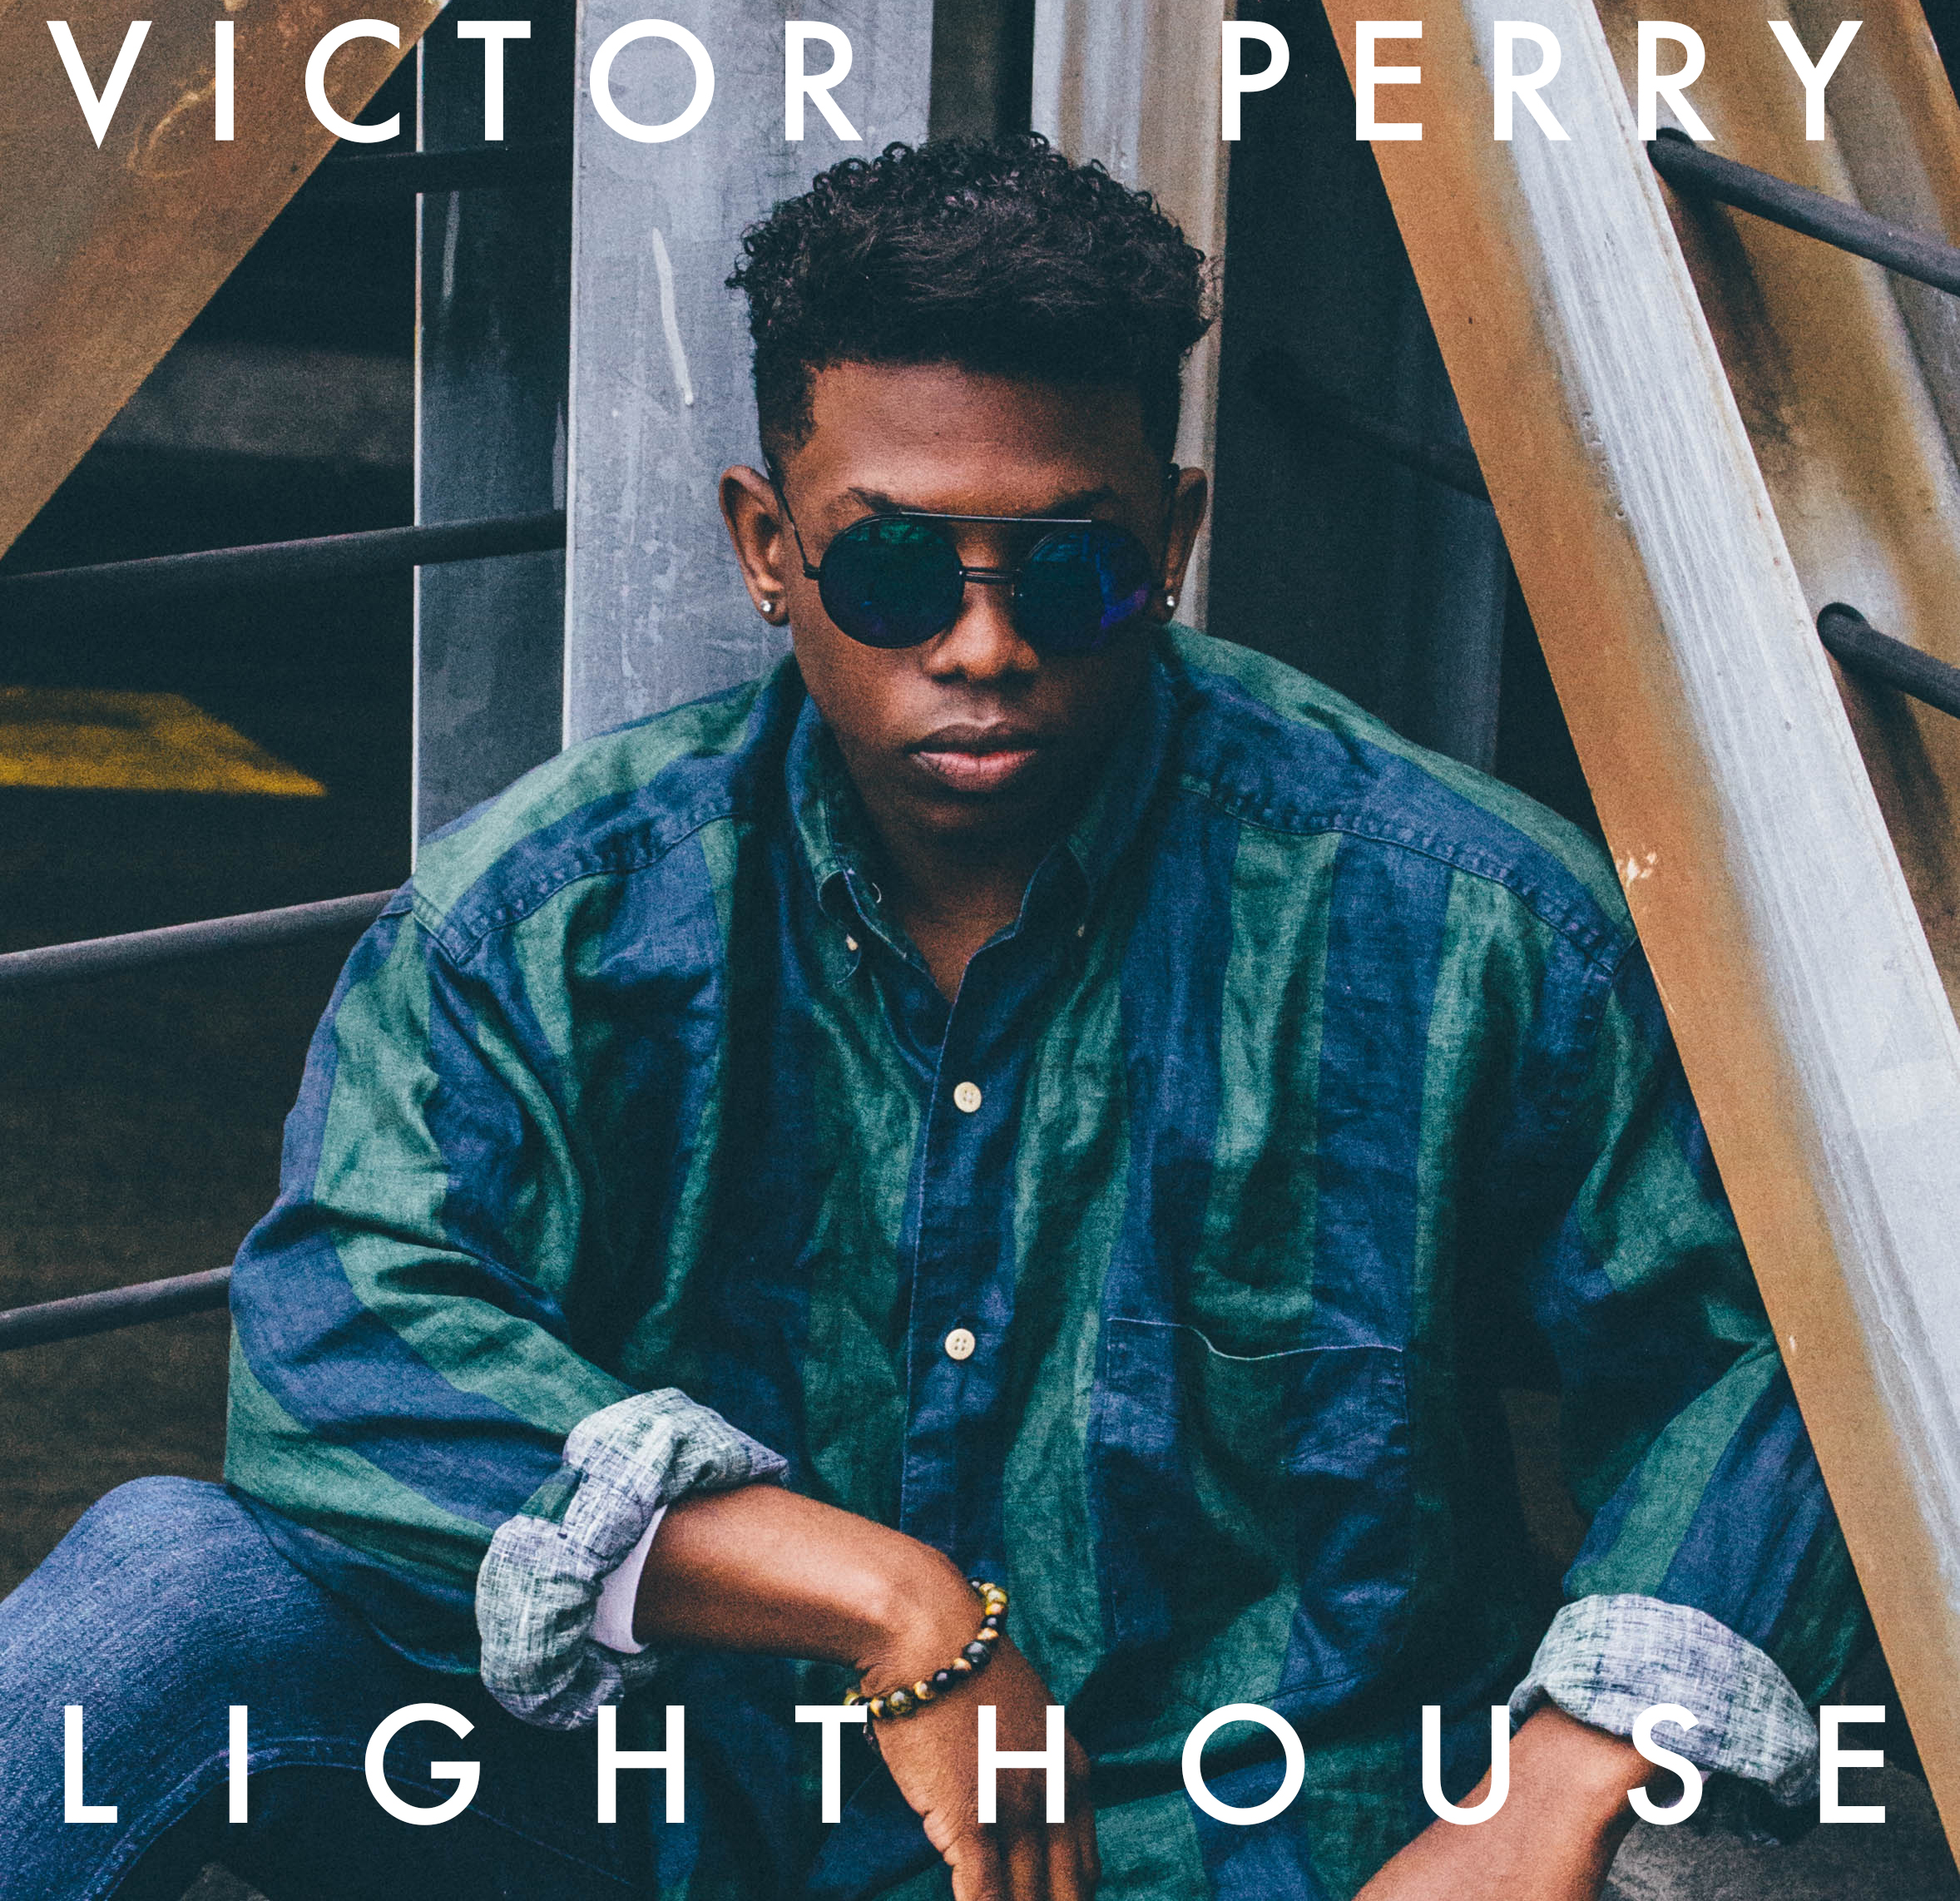 Victor Perry - Lighthouse - Single